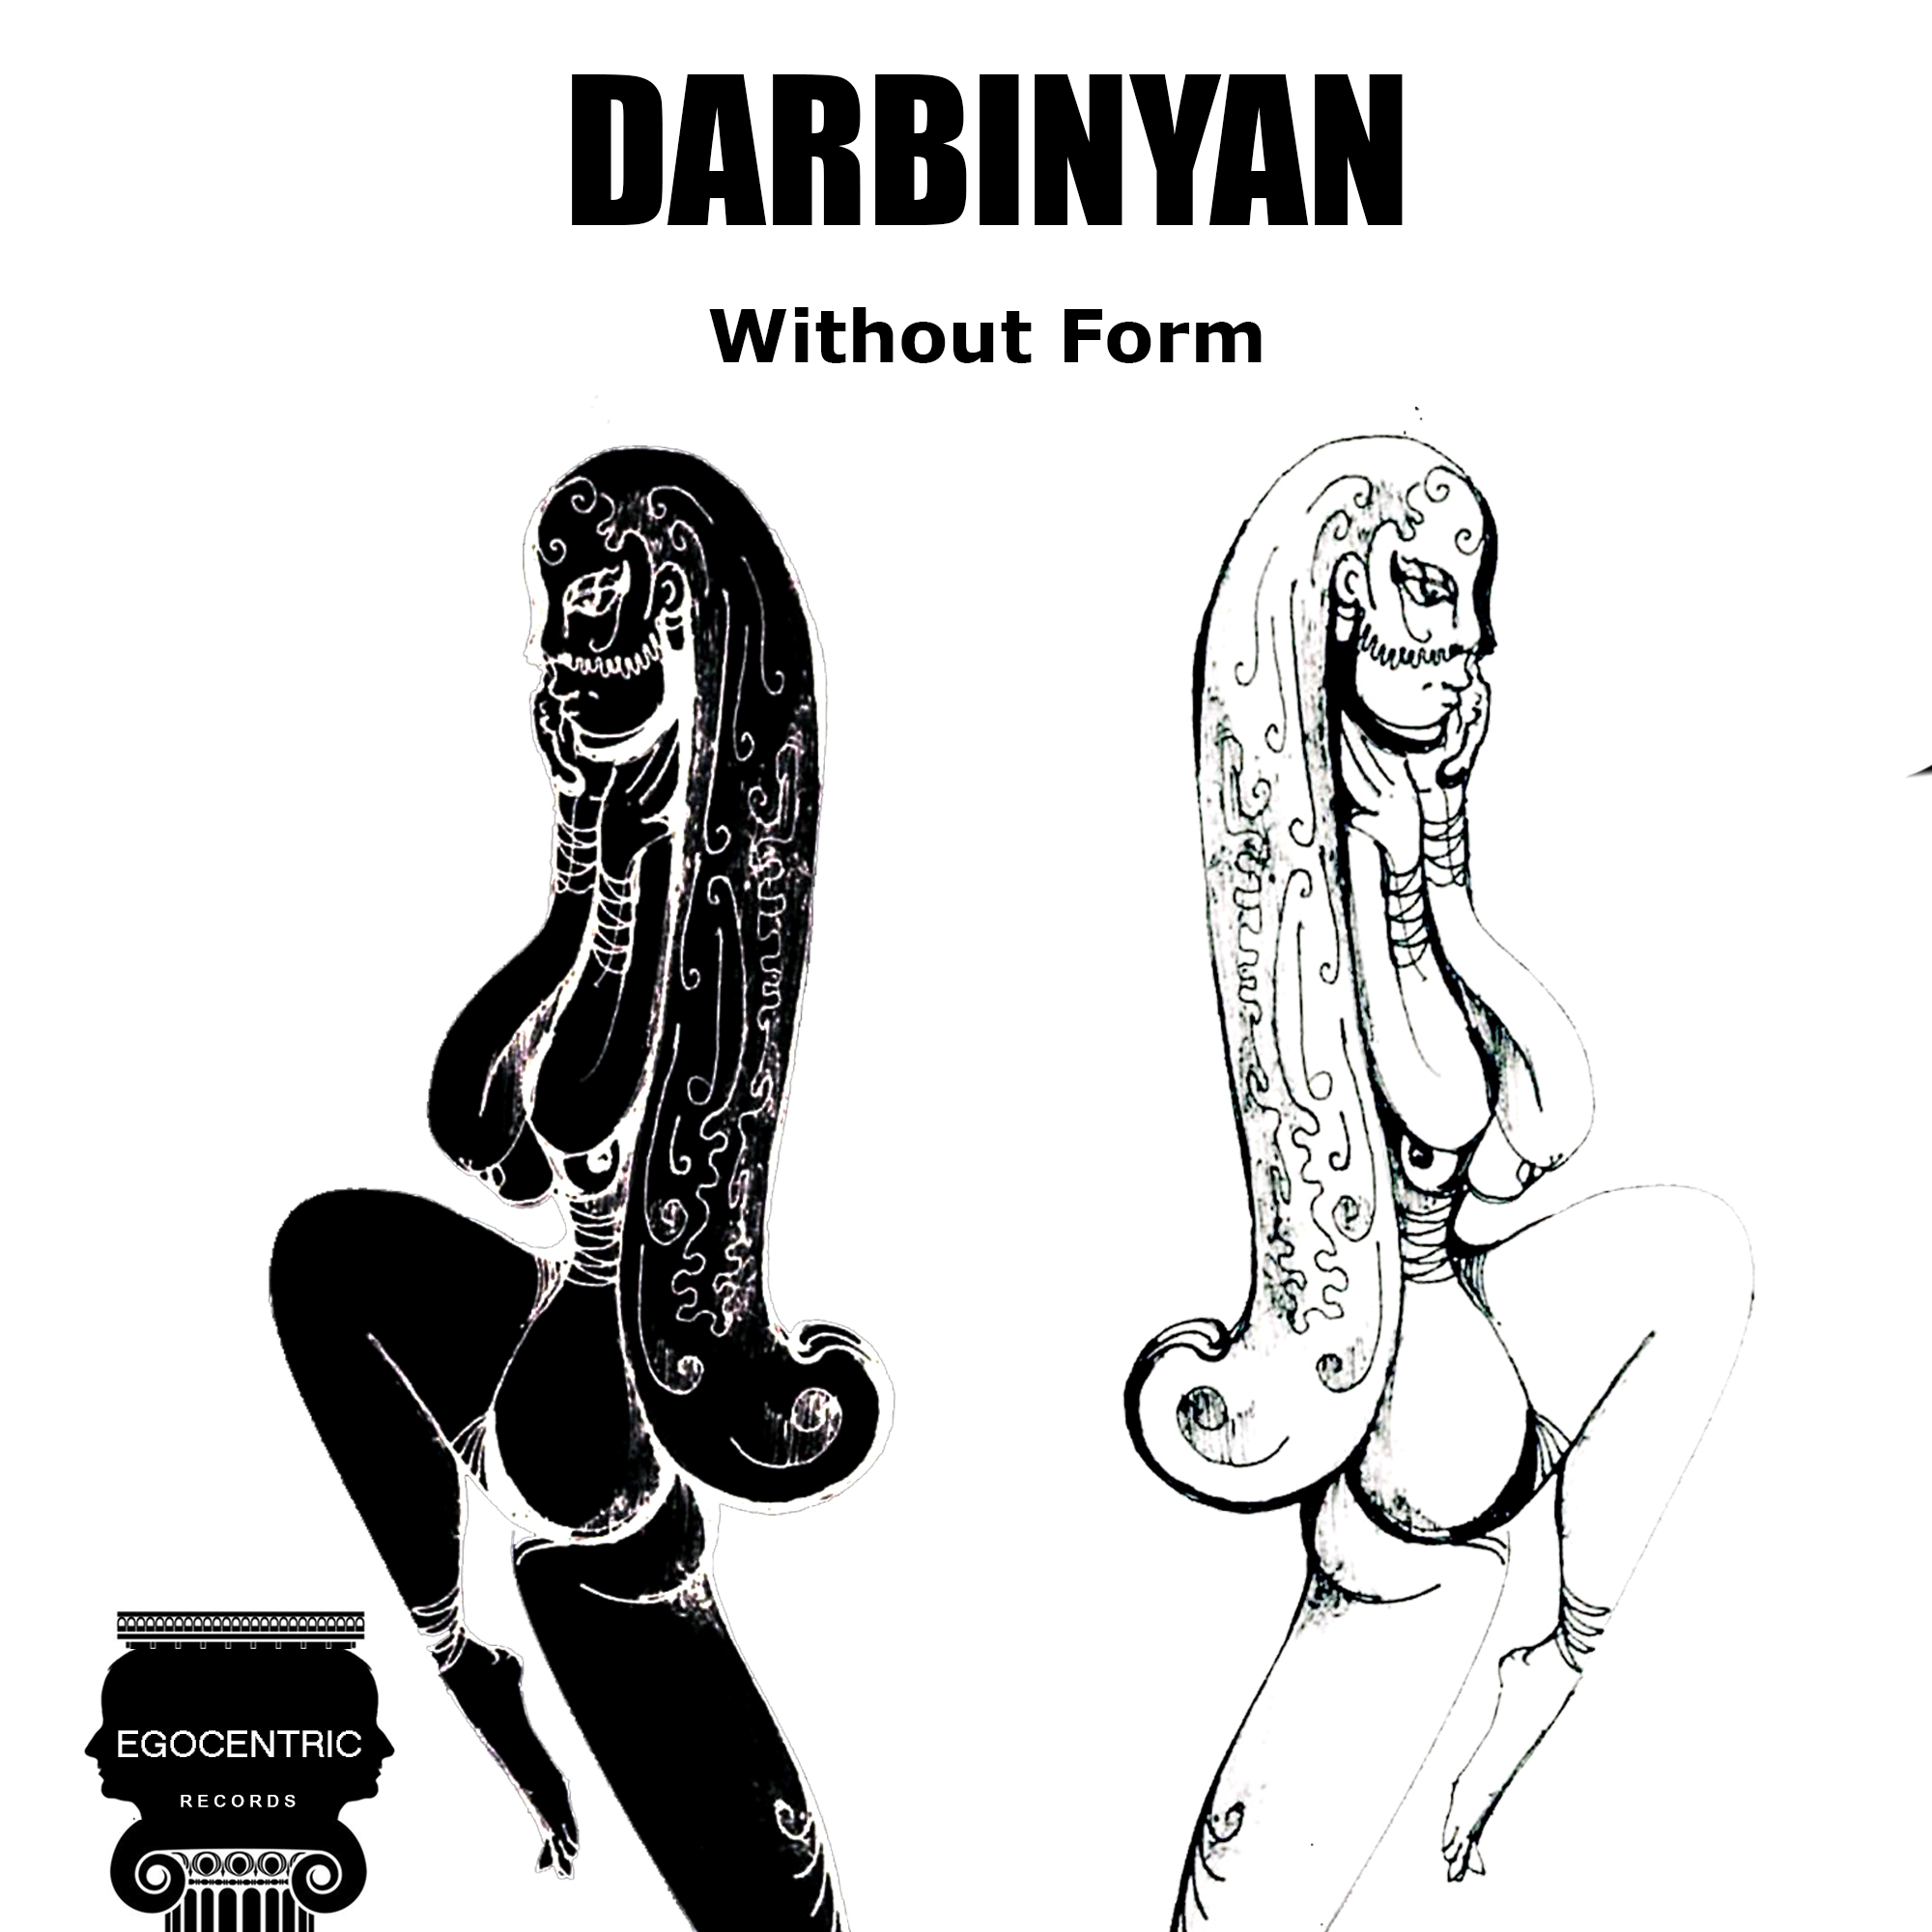 Darbinyan-Without Form EP